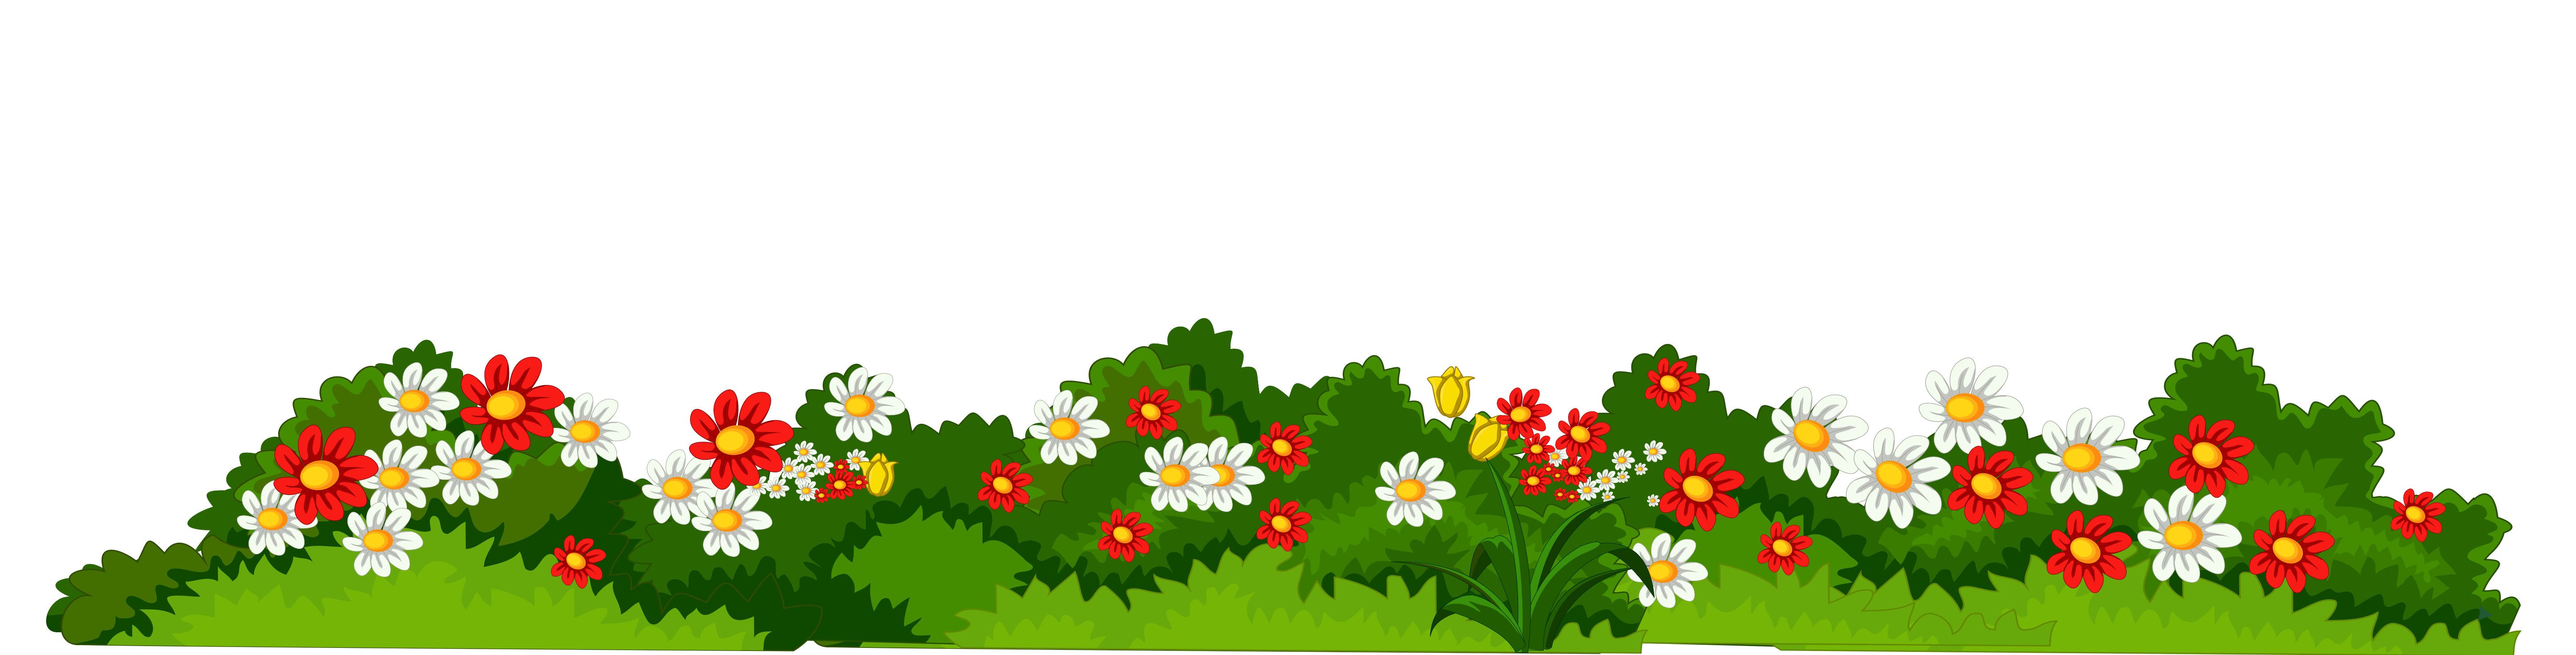 Flowers with transparent png. Clipart grass ladybug